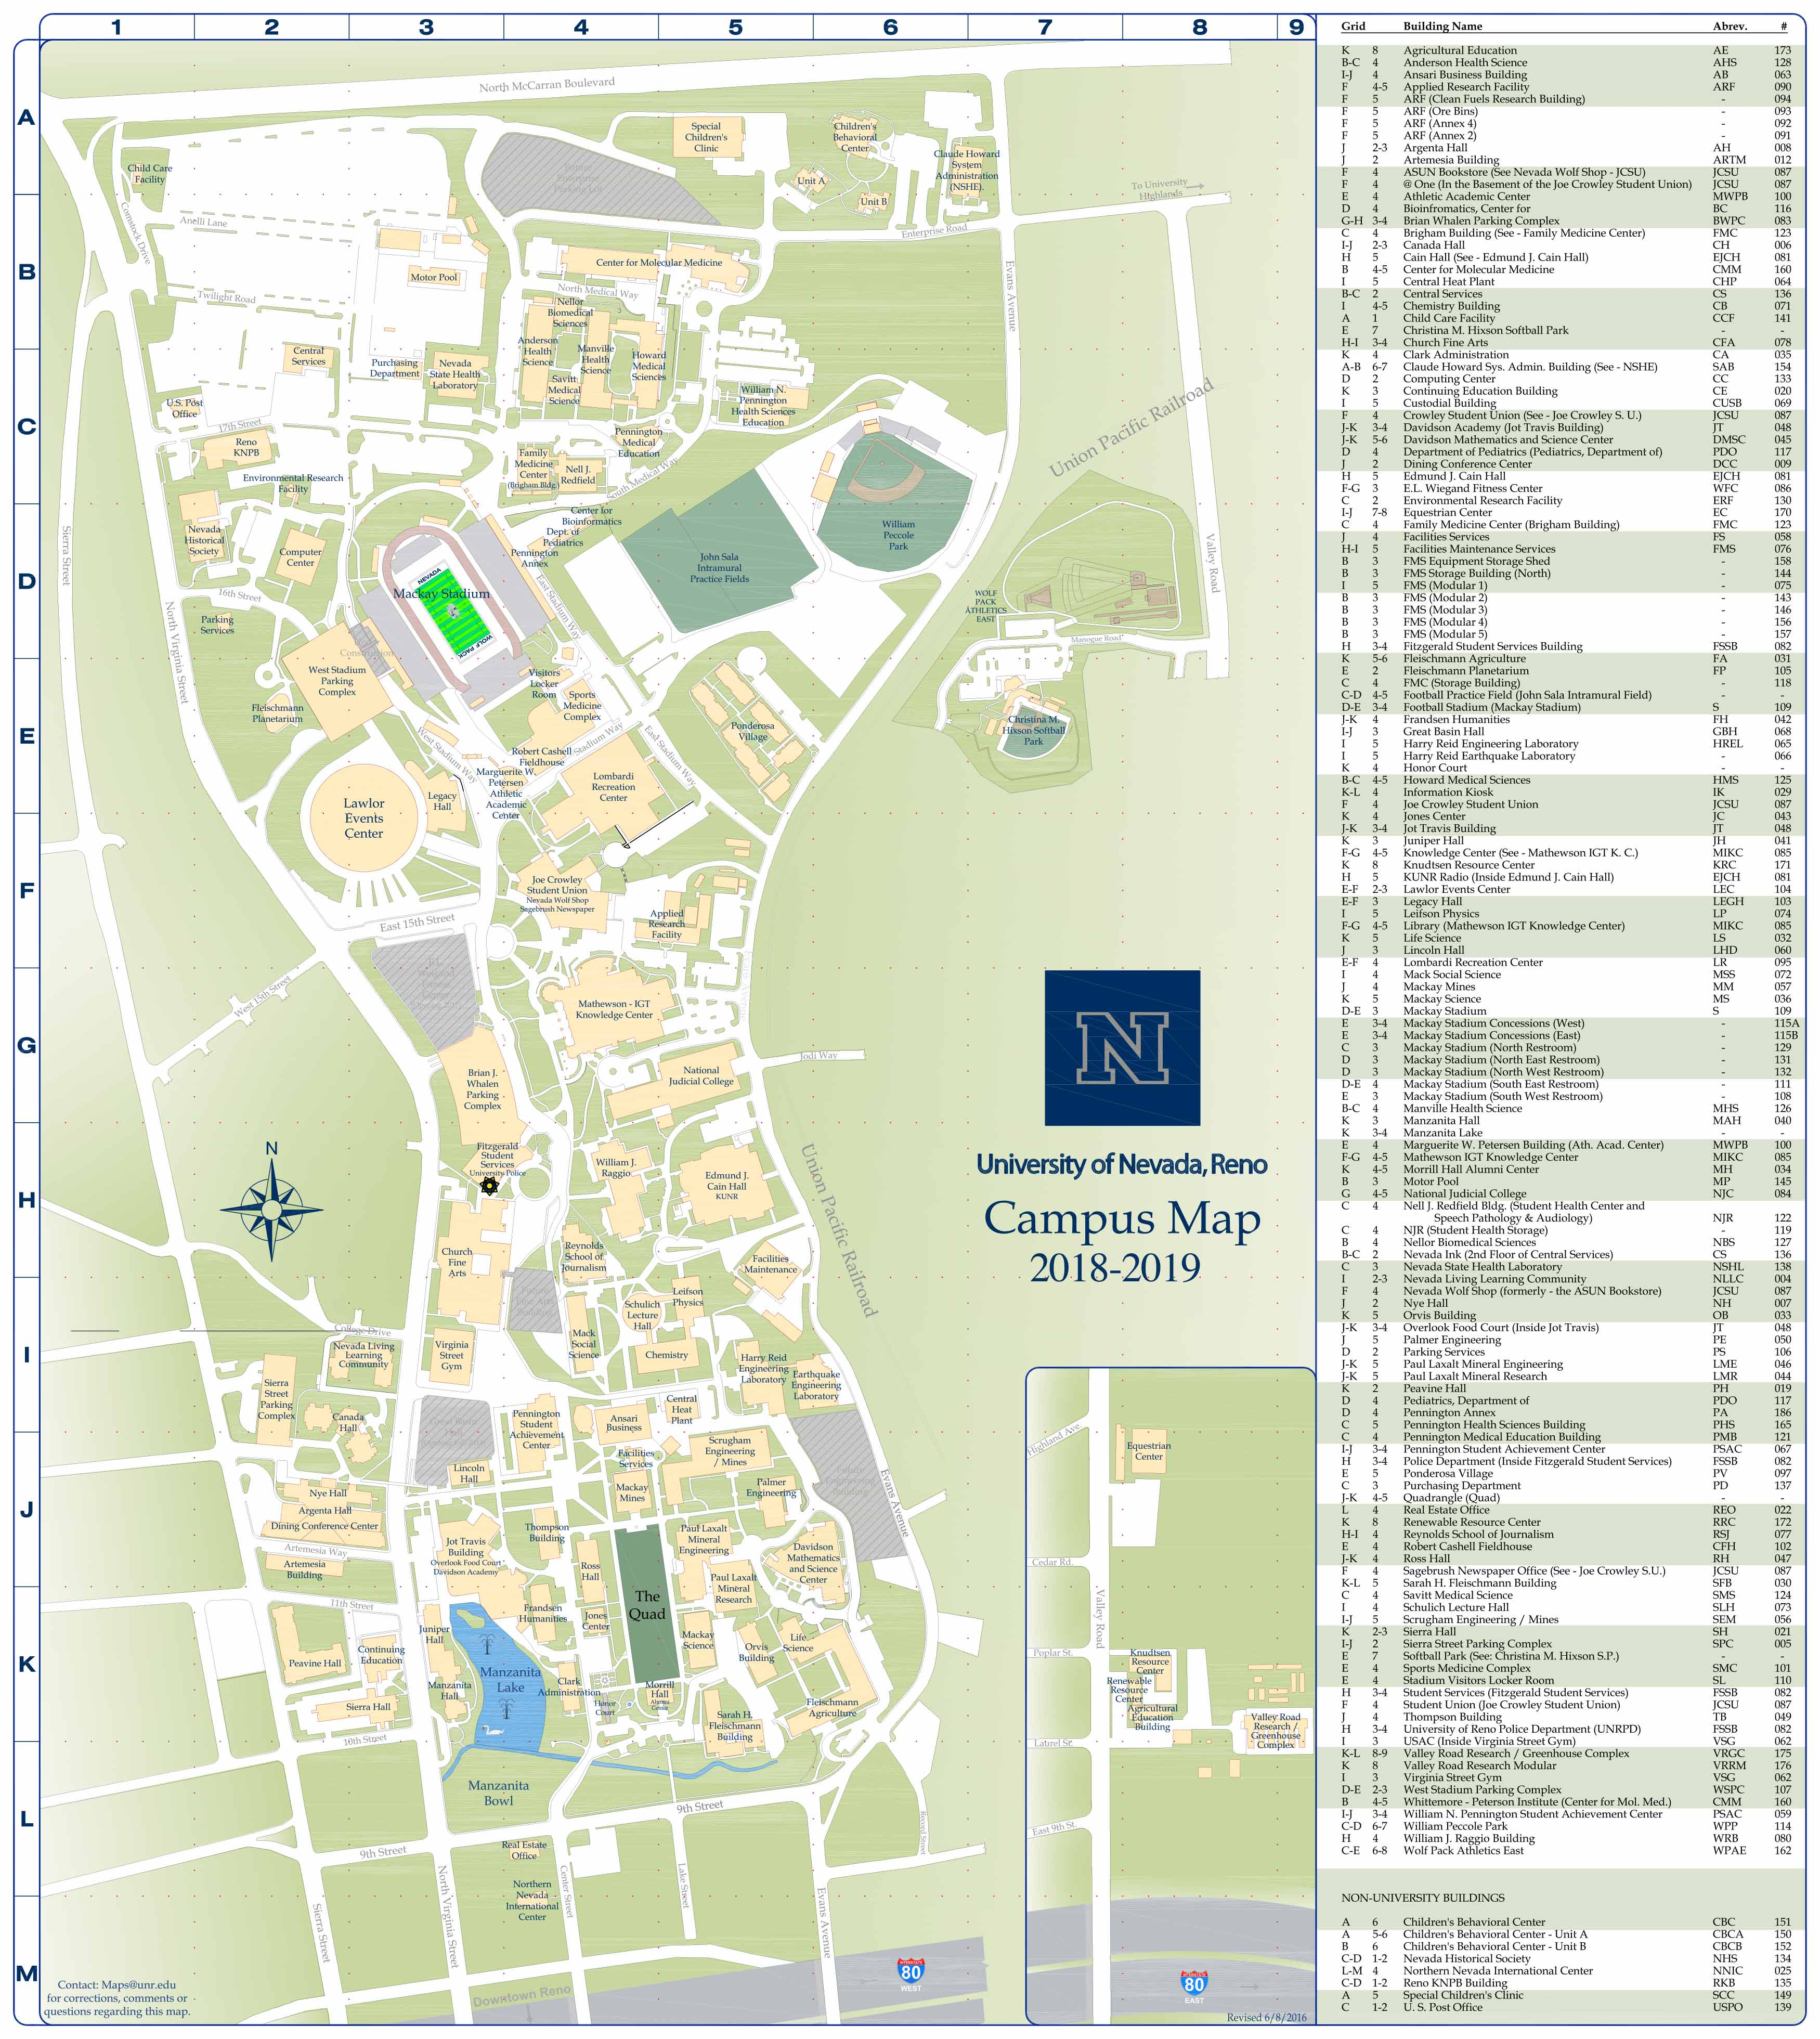 Campus Map | University of Nevada Reno Online Visitor's Guide